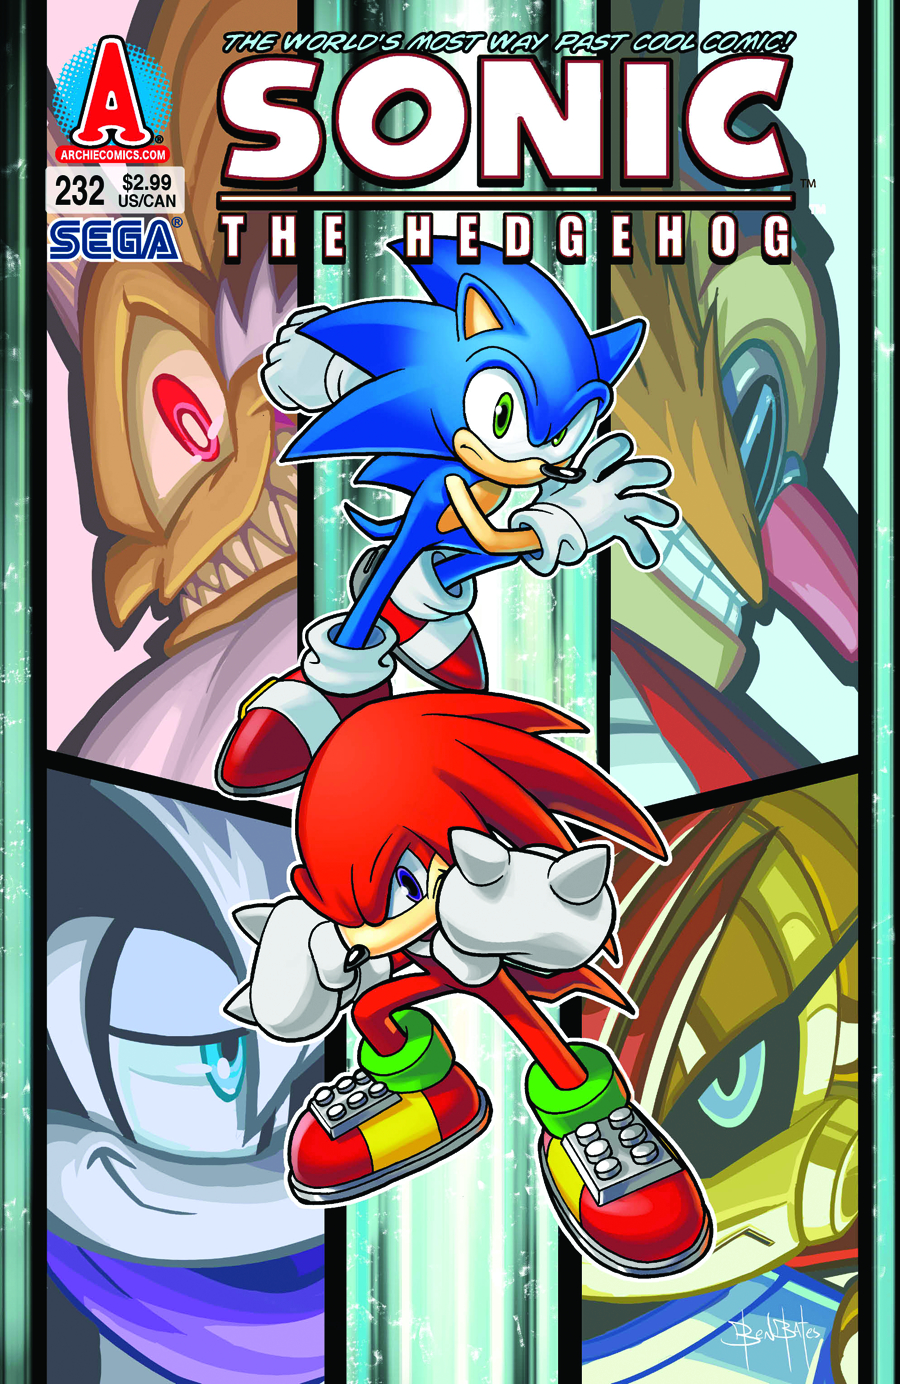 SONIC THE HEDGEHOG #232